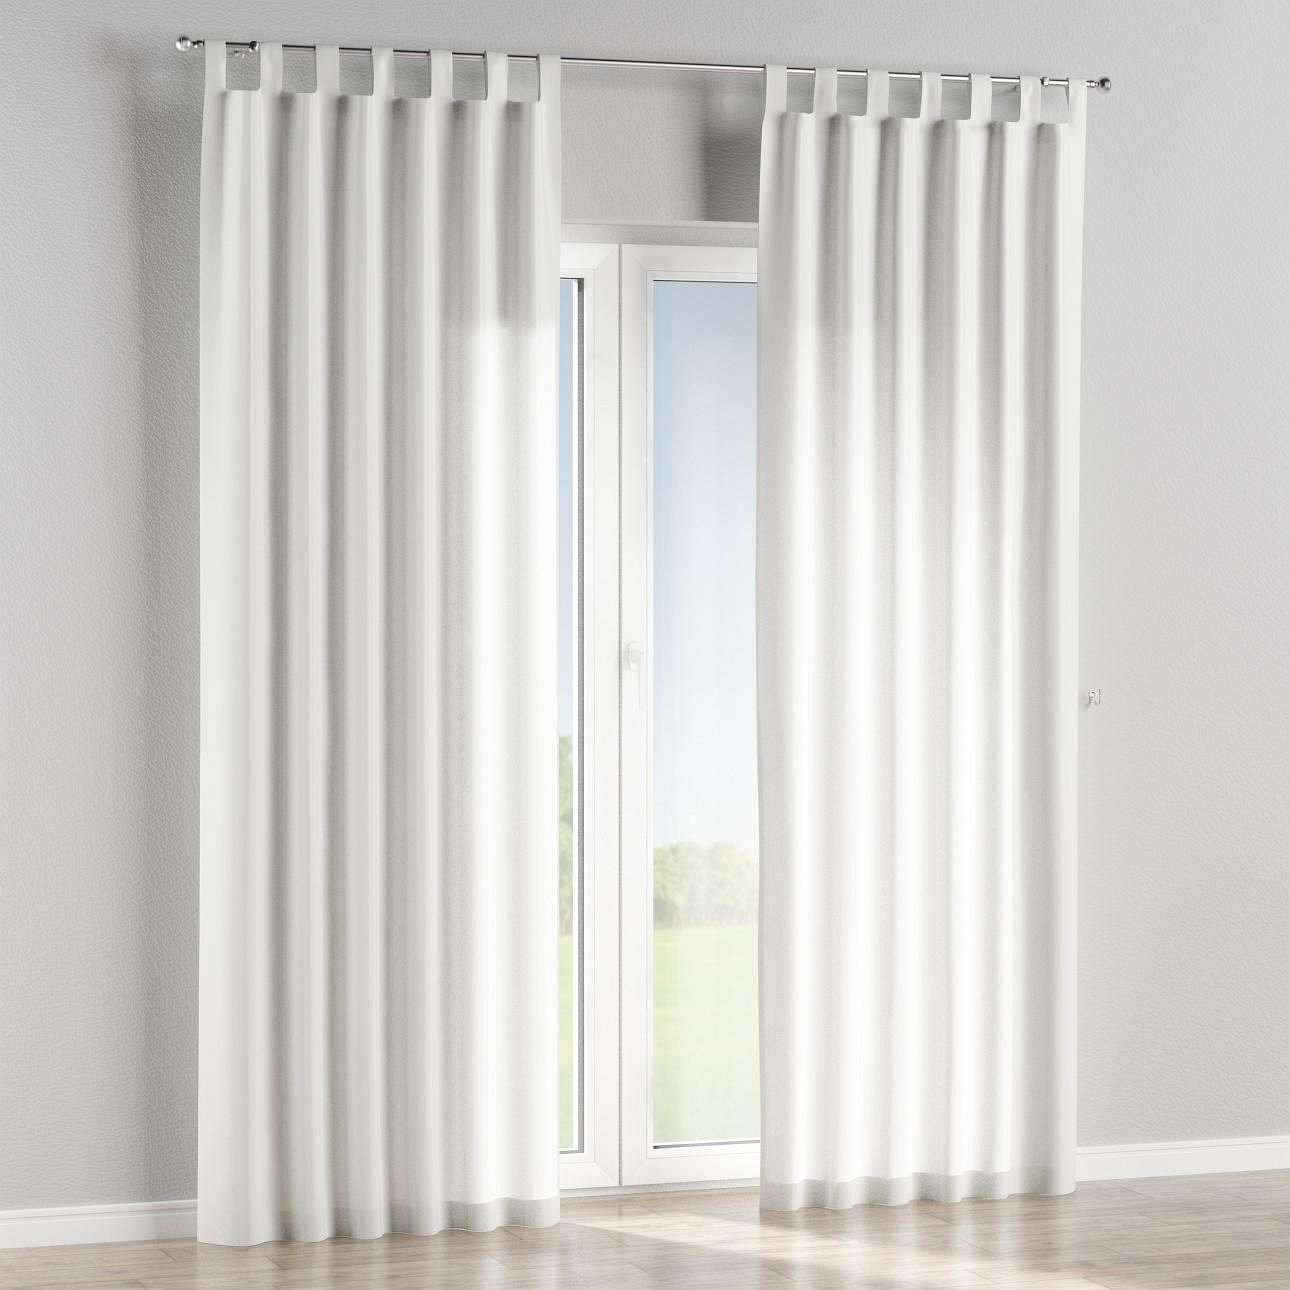 Tab top curtains in collection Bristol, fabric: 125-25